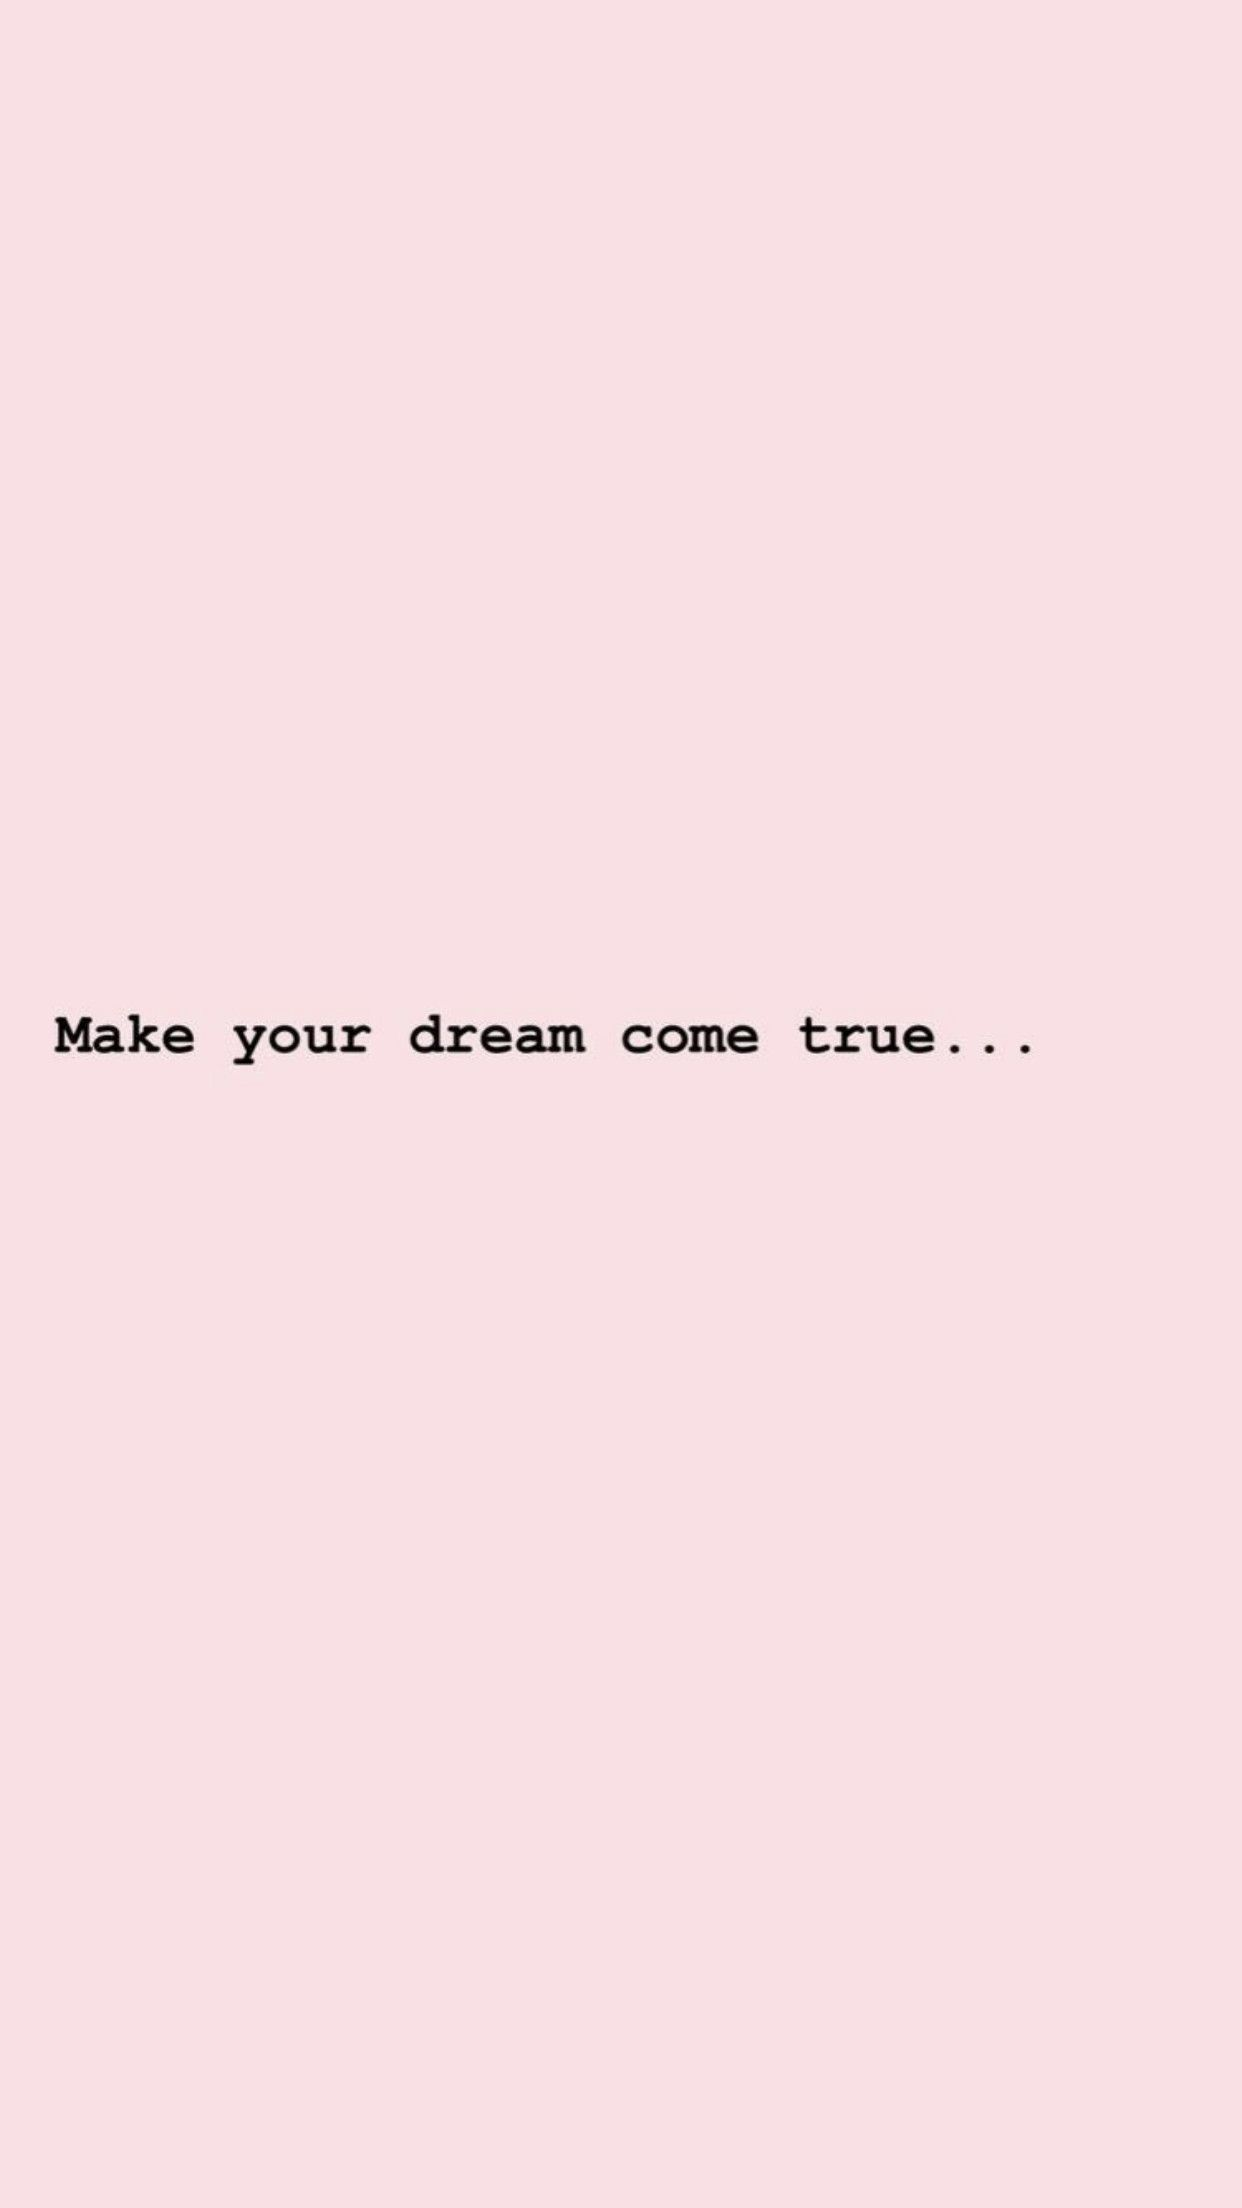 Pastel Aesthetics Quotes Wallpapers Top Free Pastel